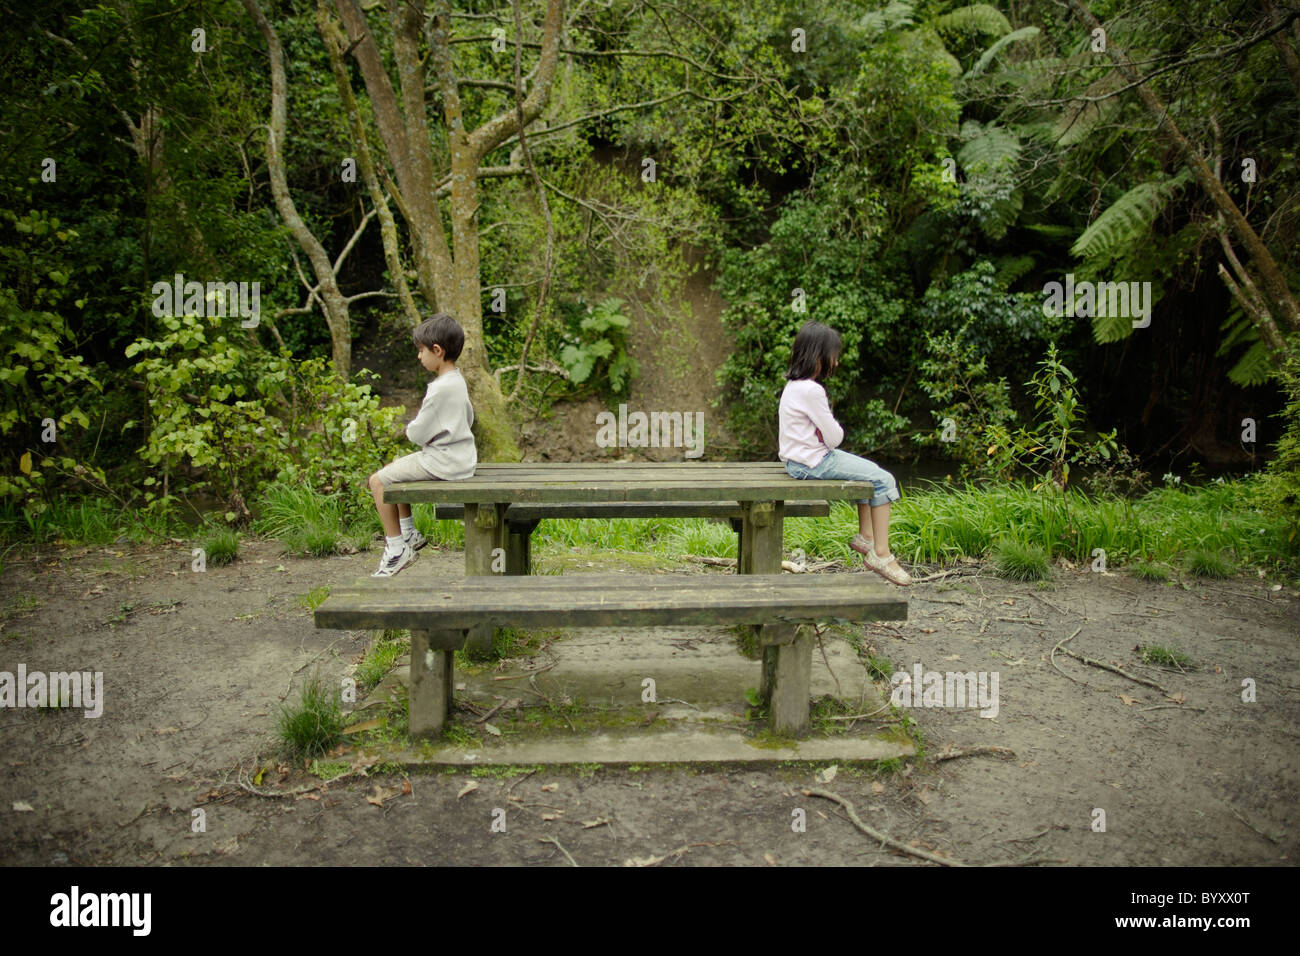 Boy and girl sit facing away from each other on wooden bench in forest, New Zealand. - Stock Image